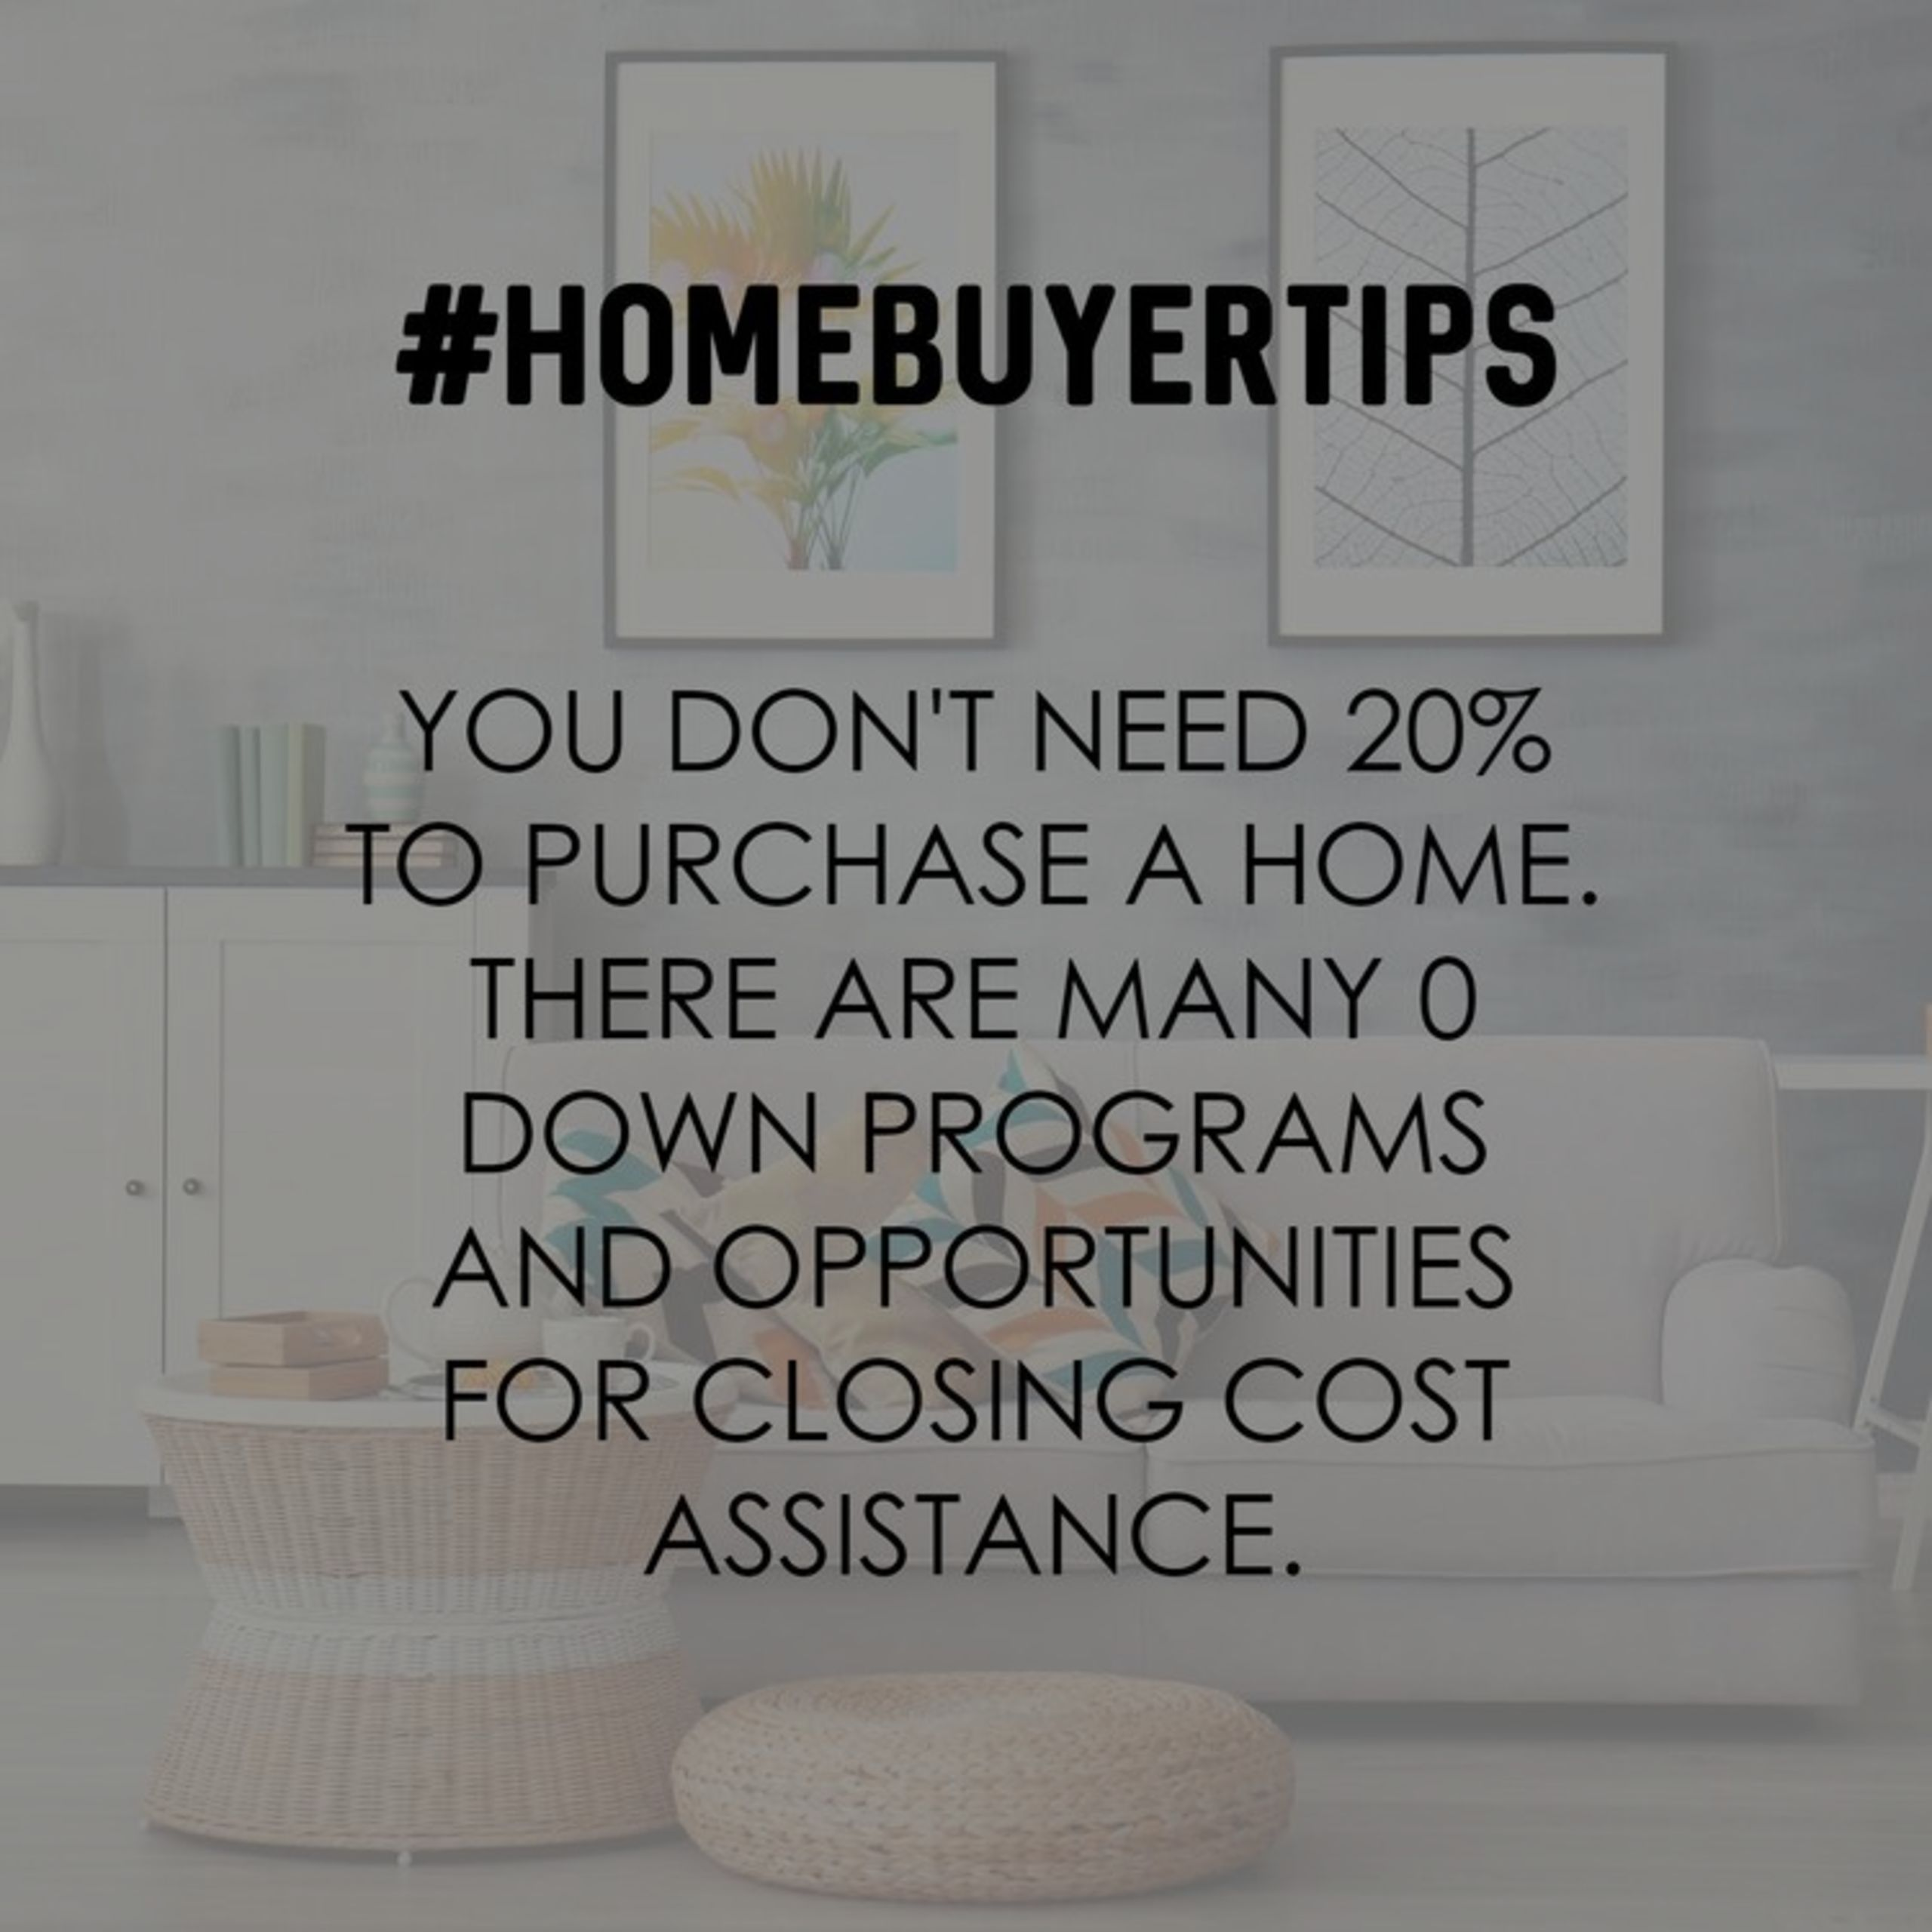 Get Pre Approved for a loan so you don't lose the home of your dreams.